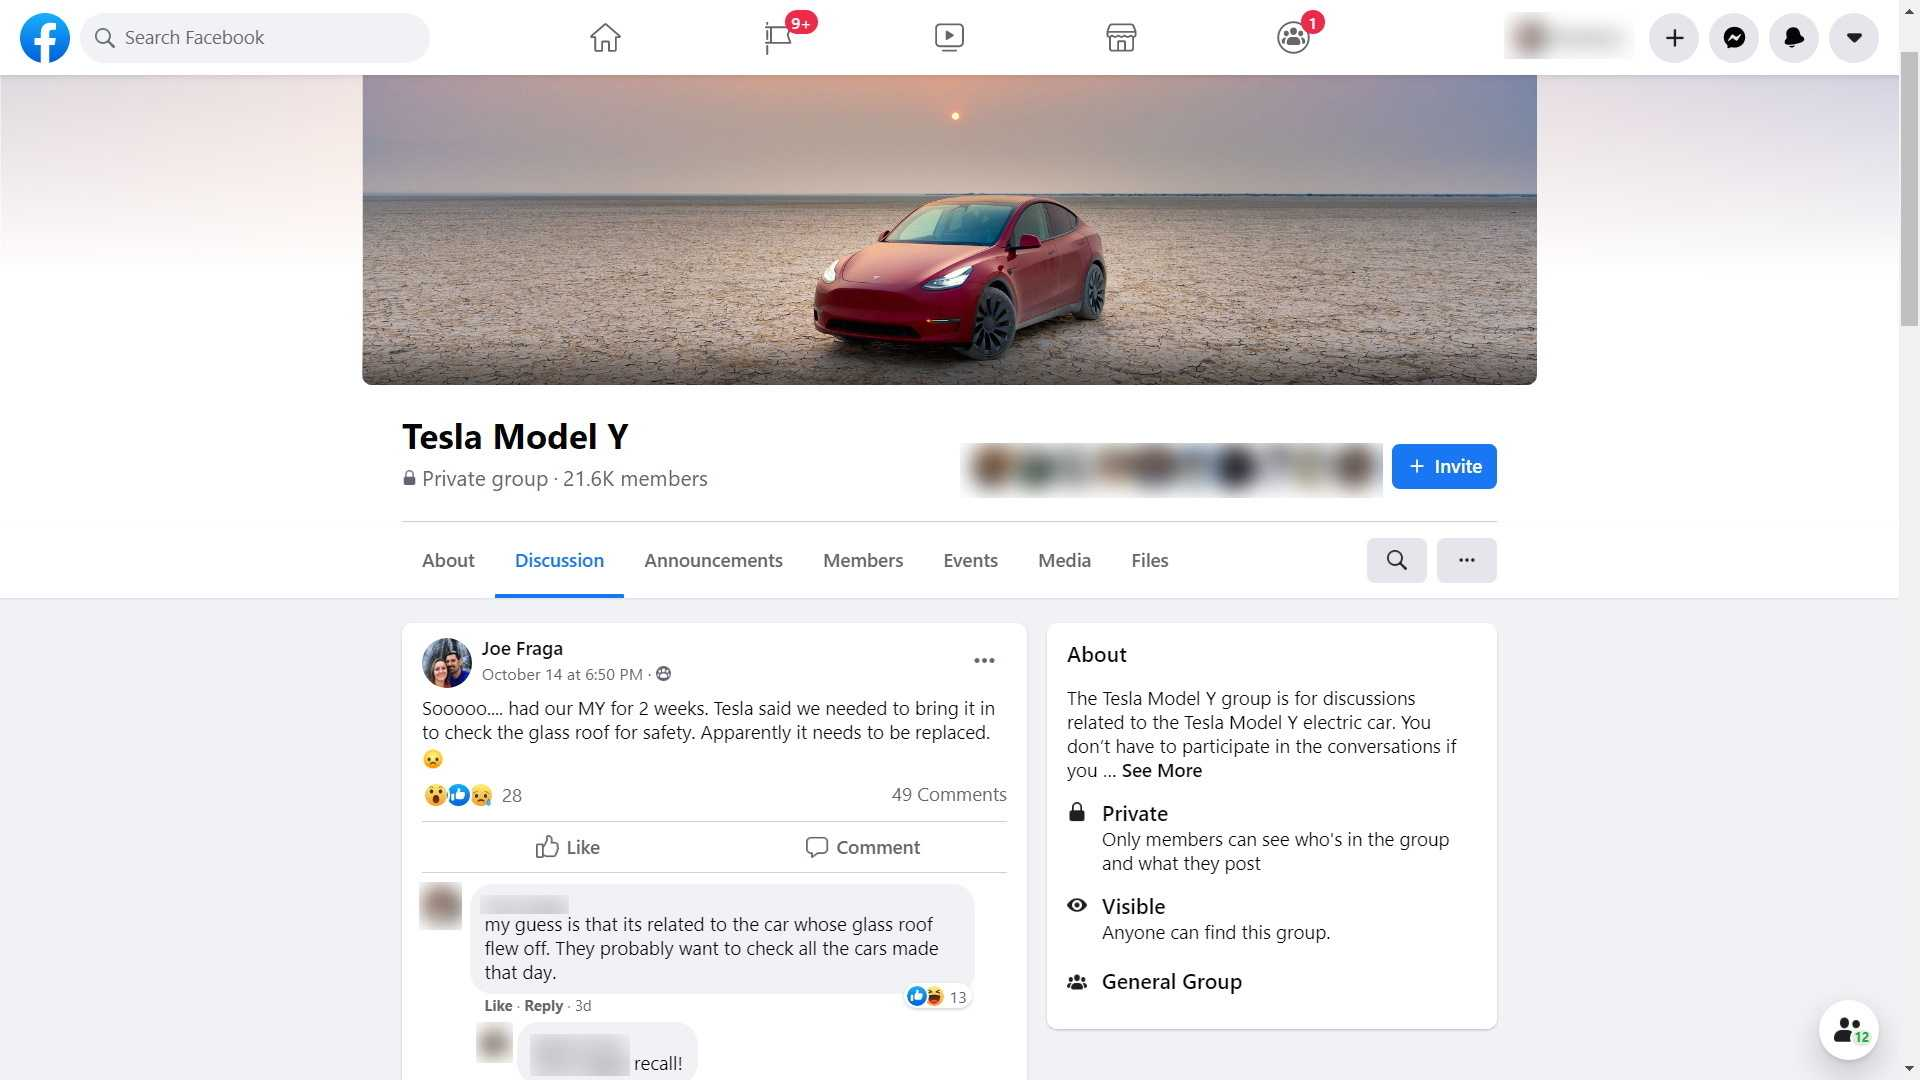 Tesla Is Calling Model Y Owners For Roof Inspection After One Flew Off... image